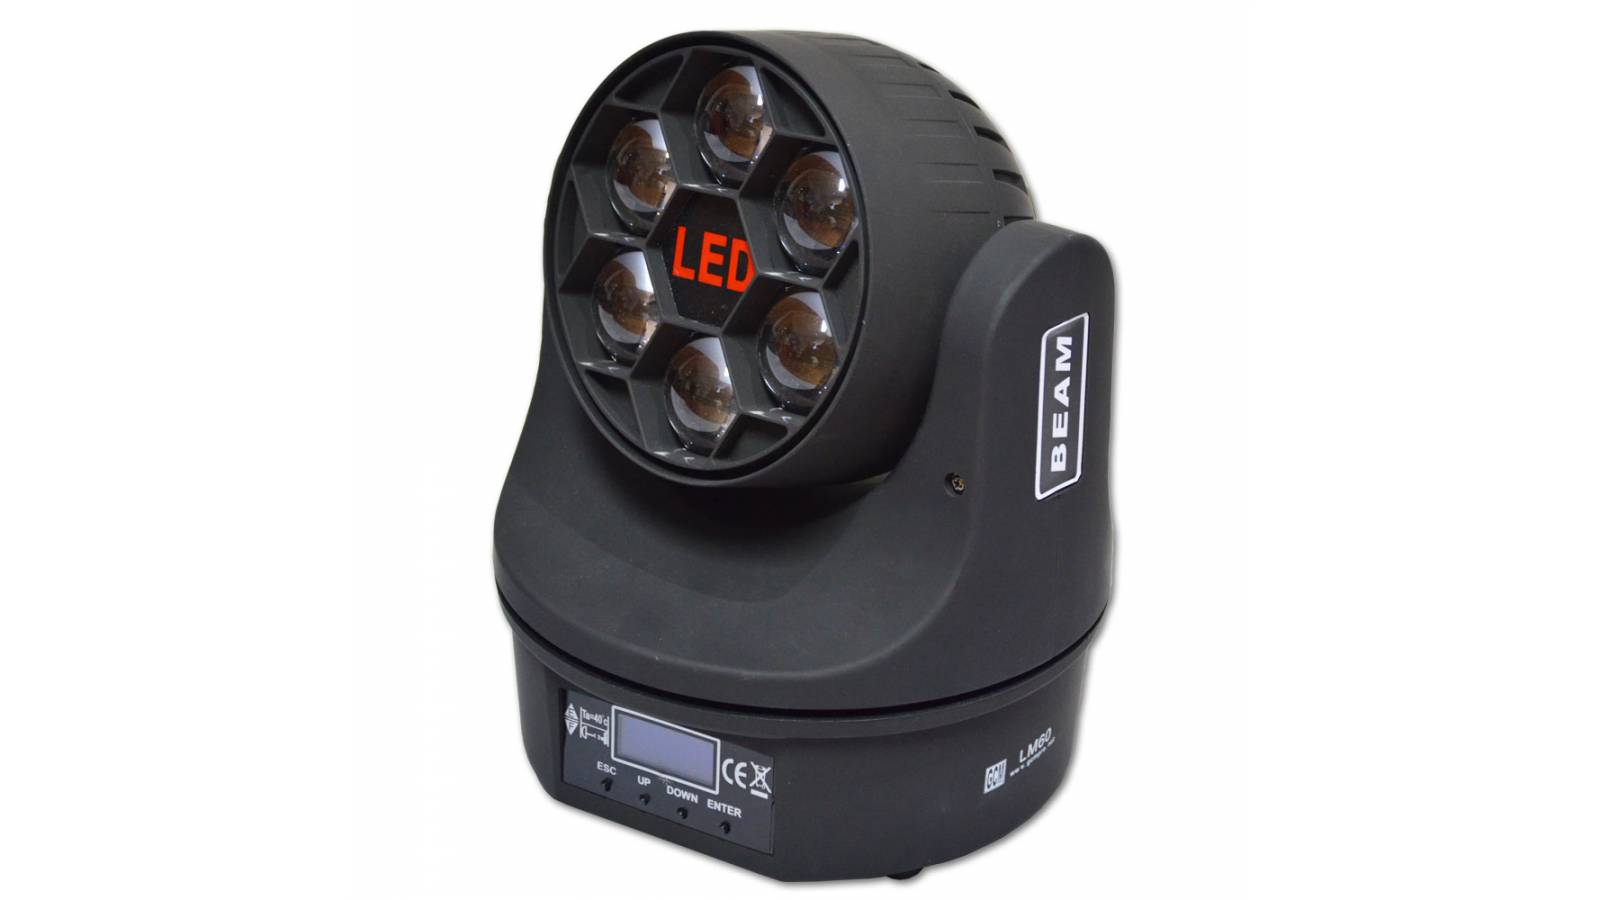 Cabeza Móvil Beam Moving Bee Eyes LM60 6x10W 4 en 1 RGBW Gcm Pro